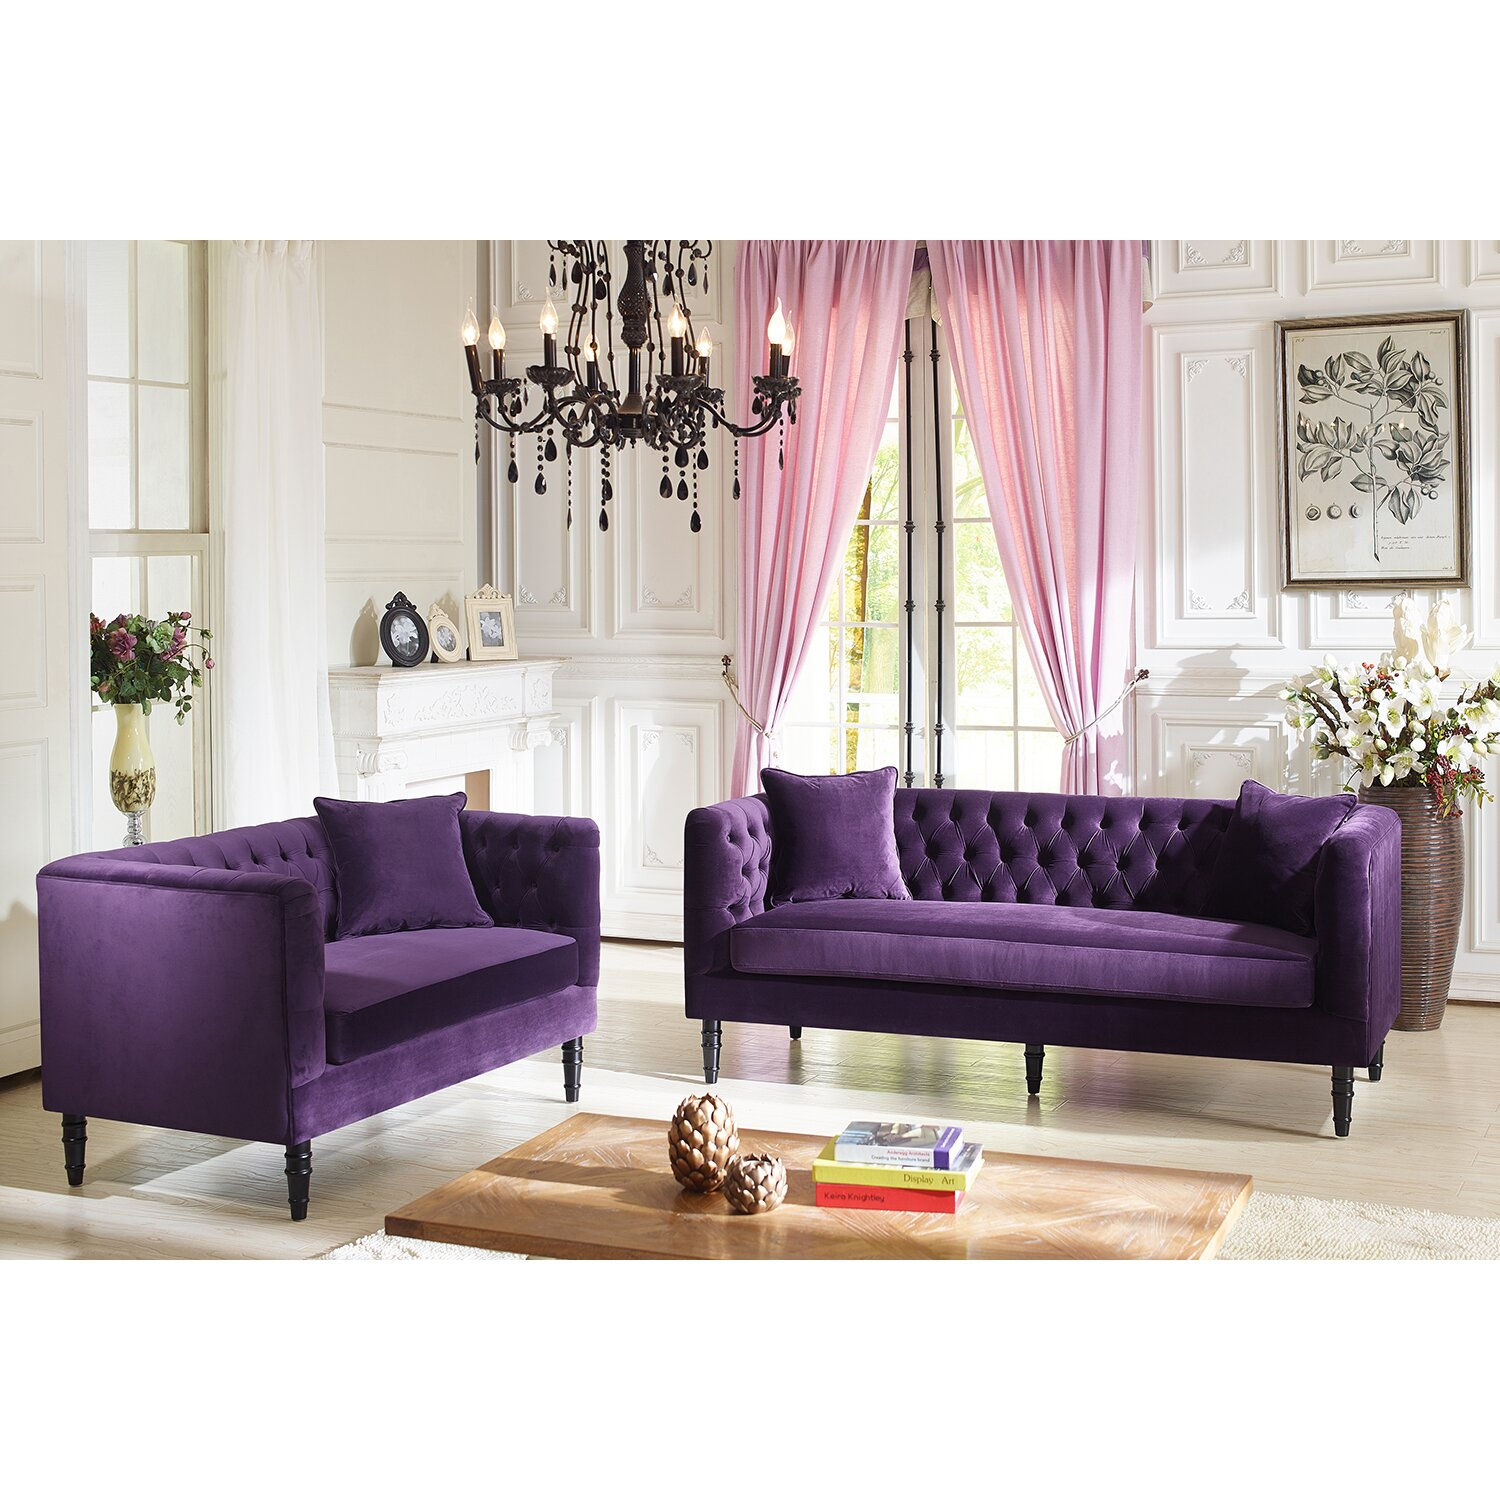 Latitude run yates 2 piece living room set